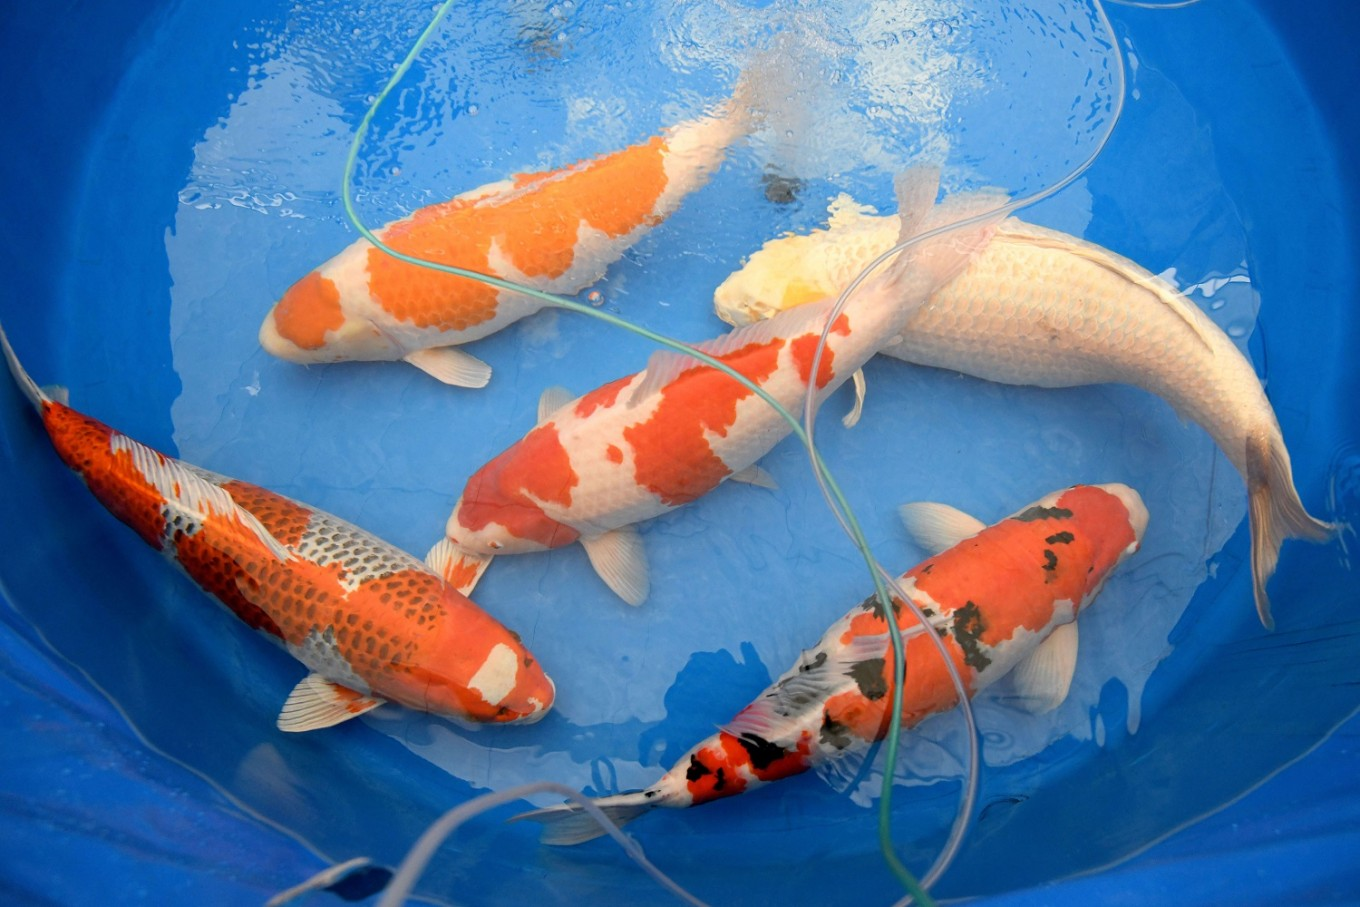 Koi story priceless japanese fish make a splash for Japanese koi carp fish